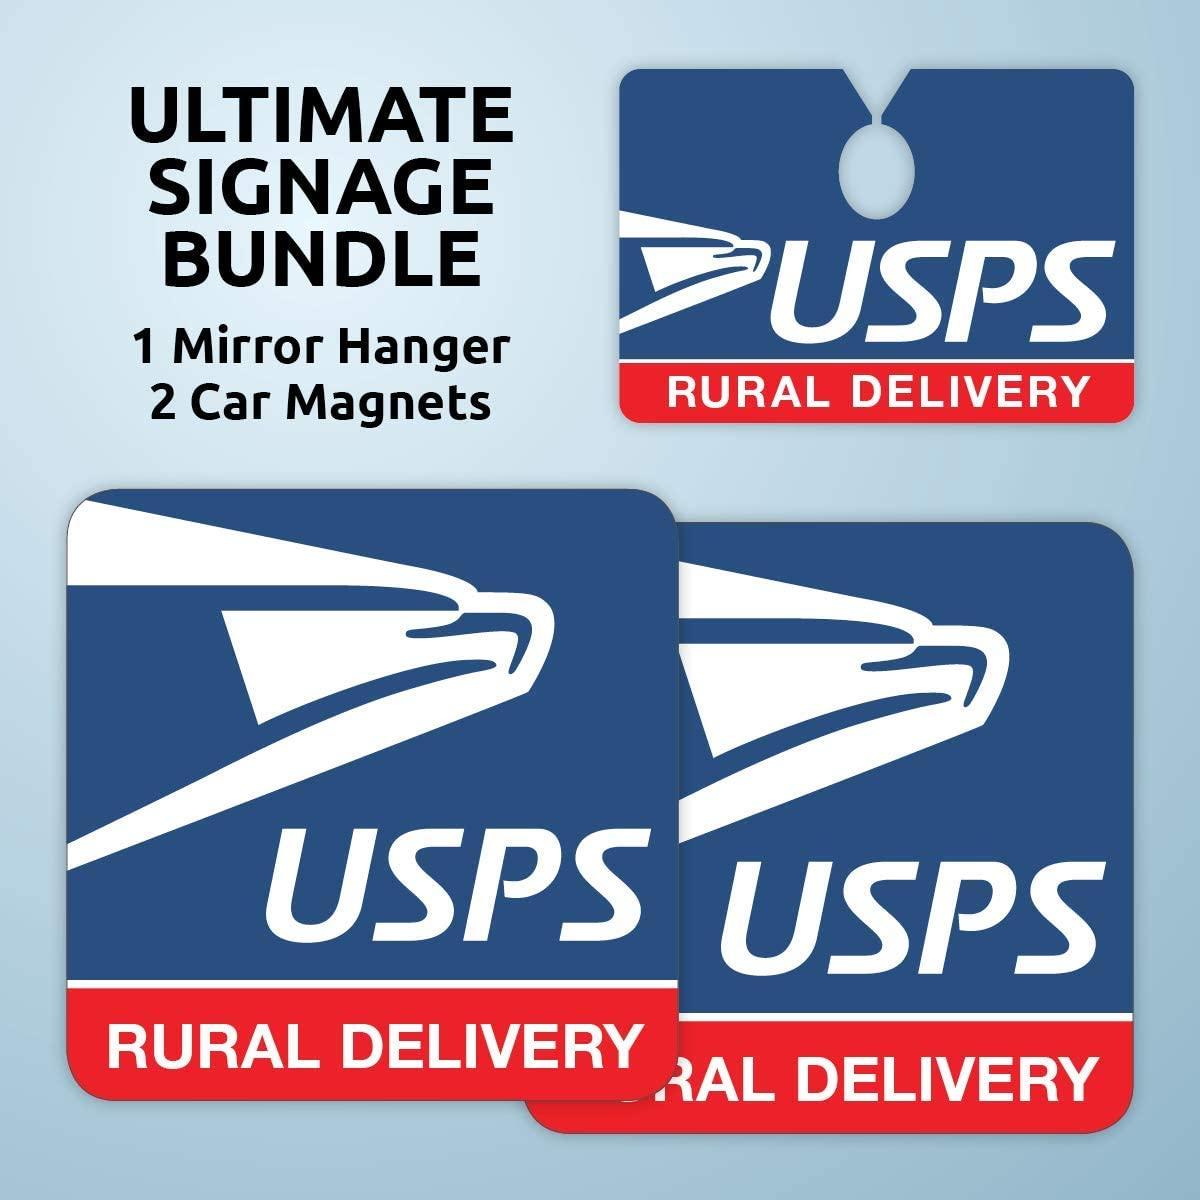 USPS Rural Carrier Signage Bundle includes Car Mirror Hanger and 2 Magnets (9x9 inches) - USPS Car Magnets, USPS Magnetic Car Signs for Rural Carrier, USPS Rural Carrier Accessories, USPS Signs